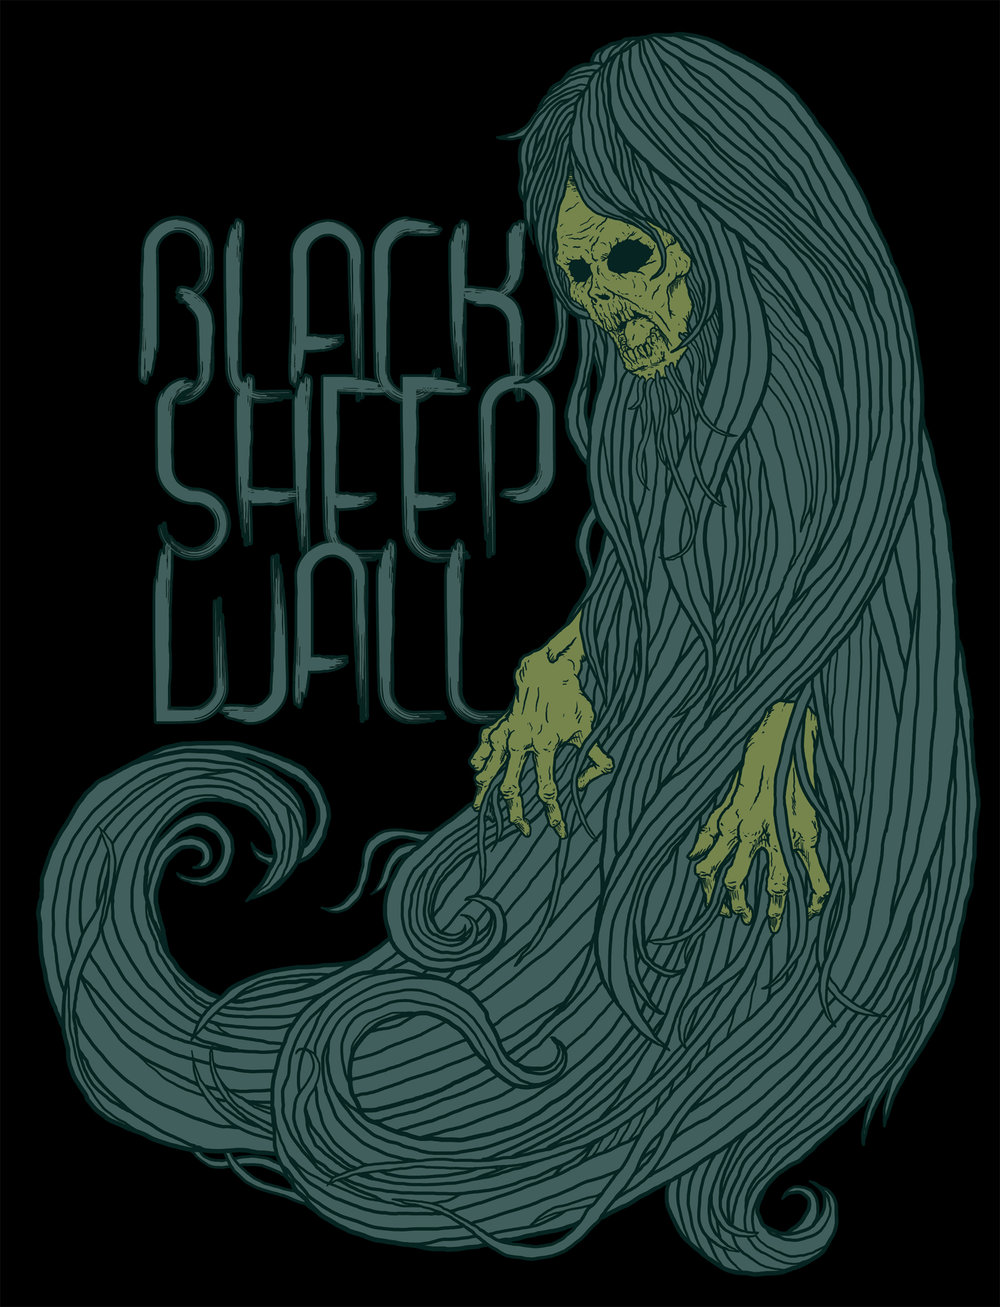 Shirt design for Black Sheep Wall